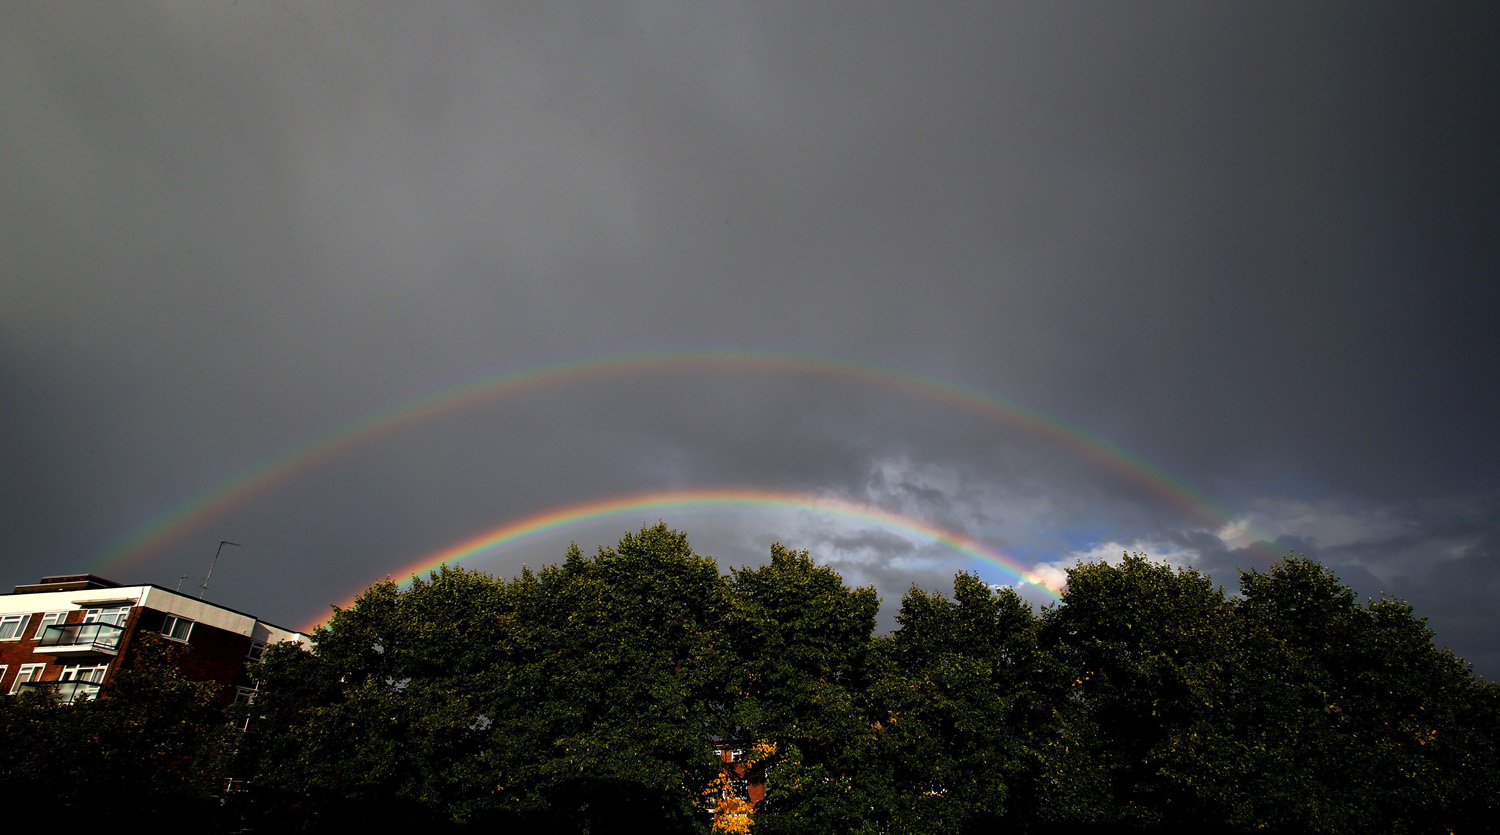 Double rainbows are seen after a heavy rain in London on August 11, 2014.